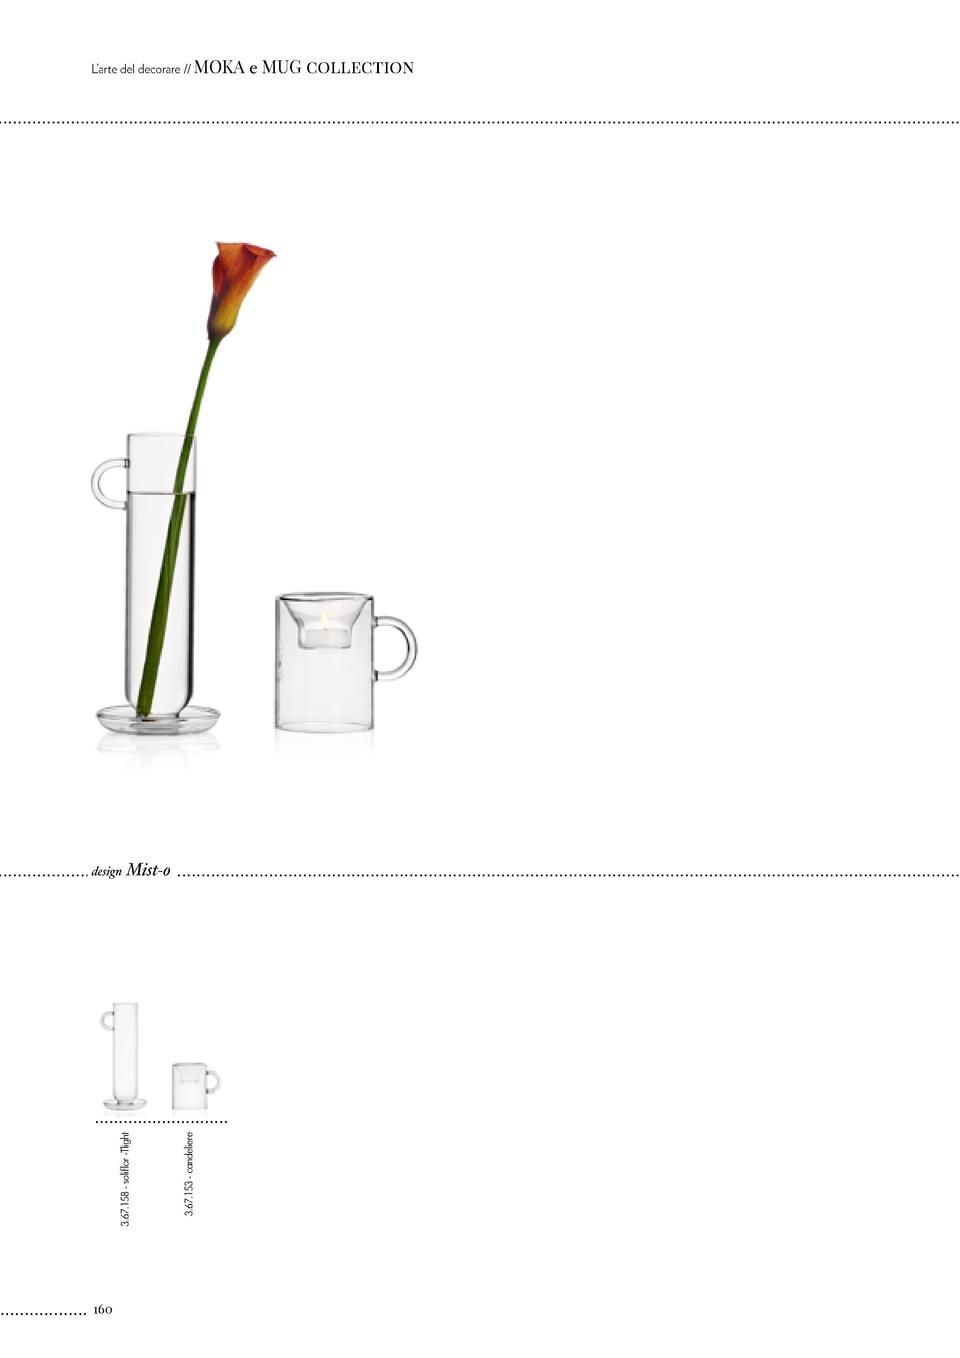 L   arte del decorare    MOKA  160  3.67.153 - candeliere  Mist-o  3.67.158 - soliflor -Tlight  design  e MUG collection  ...